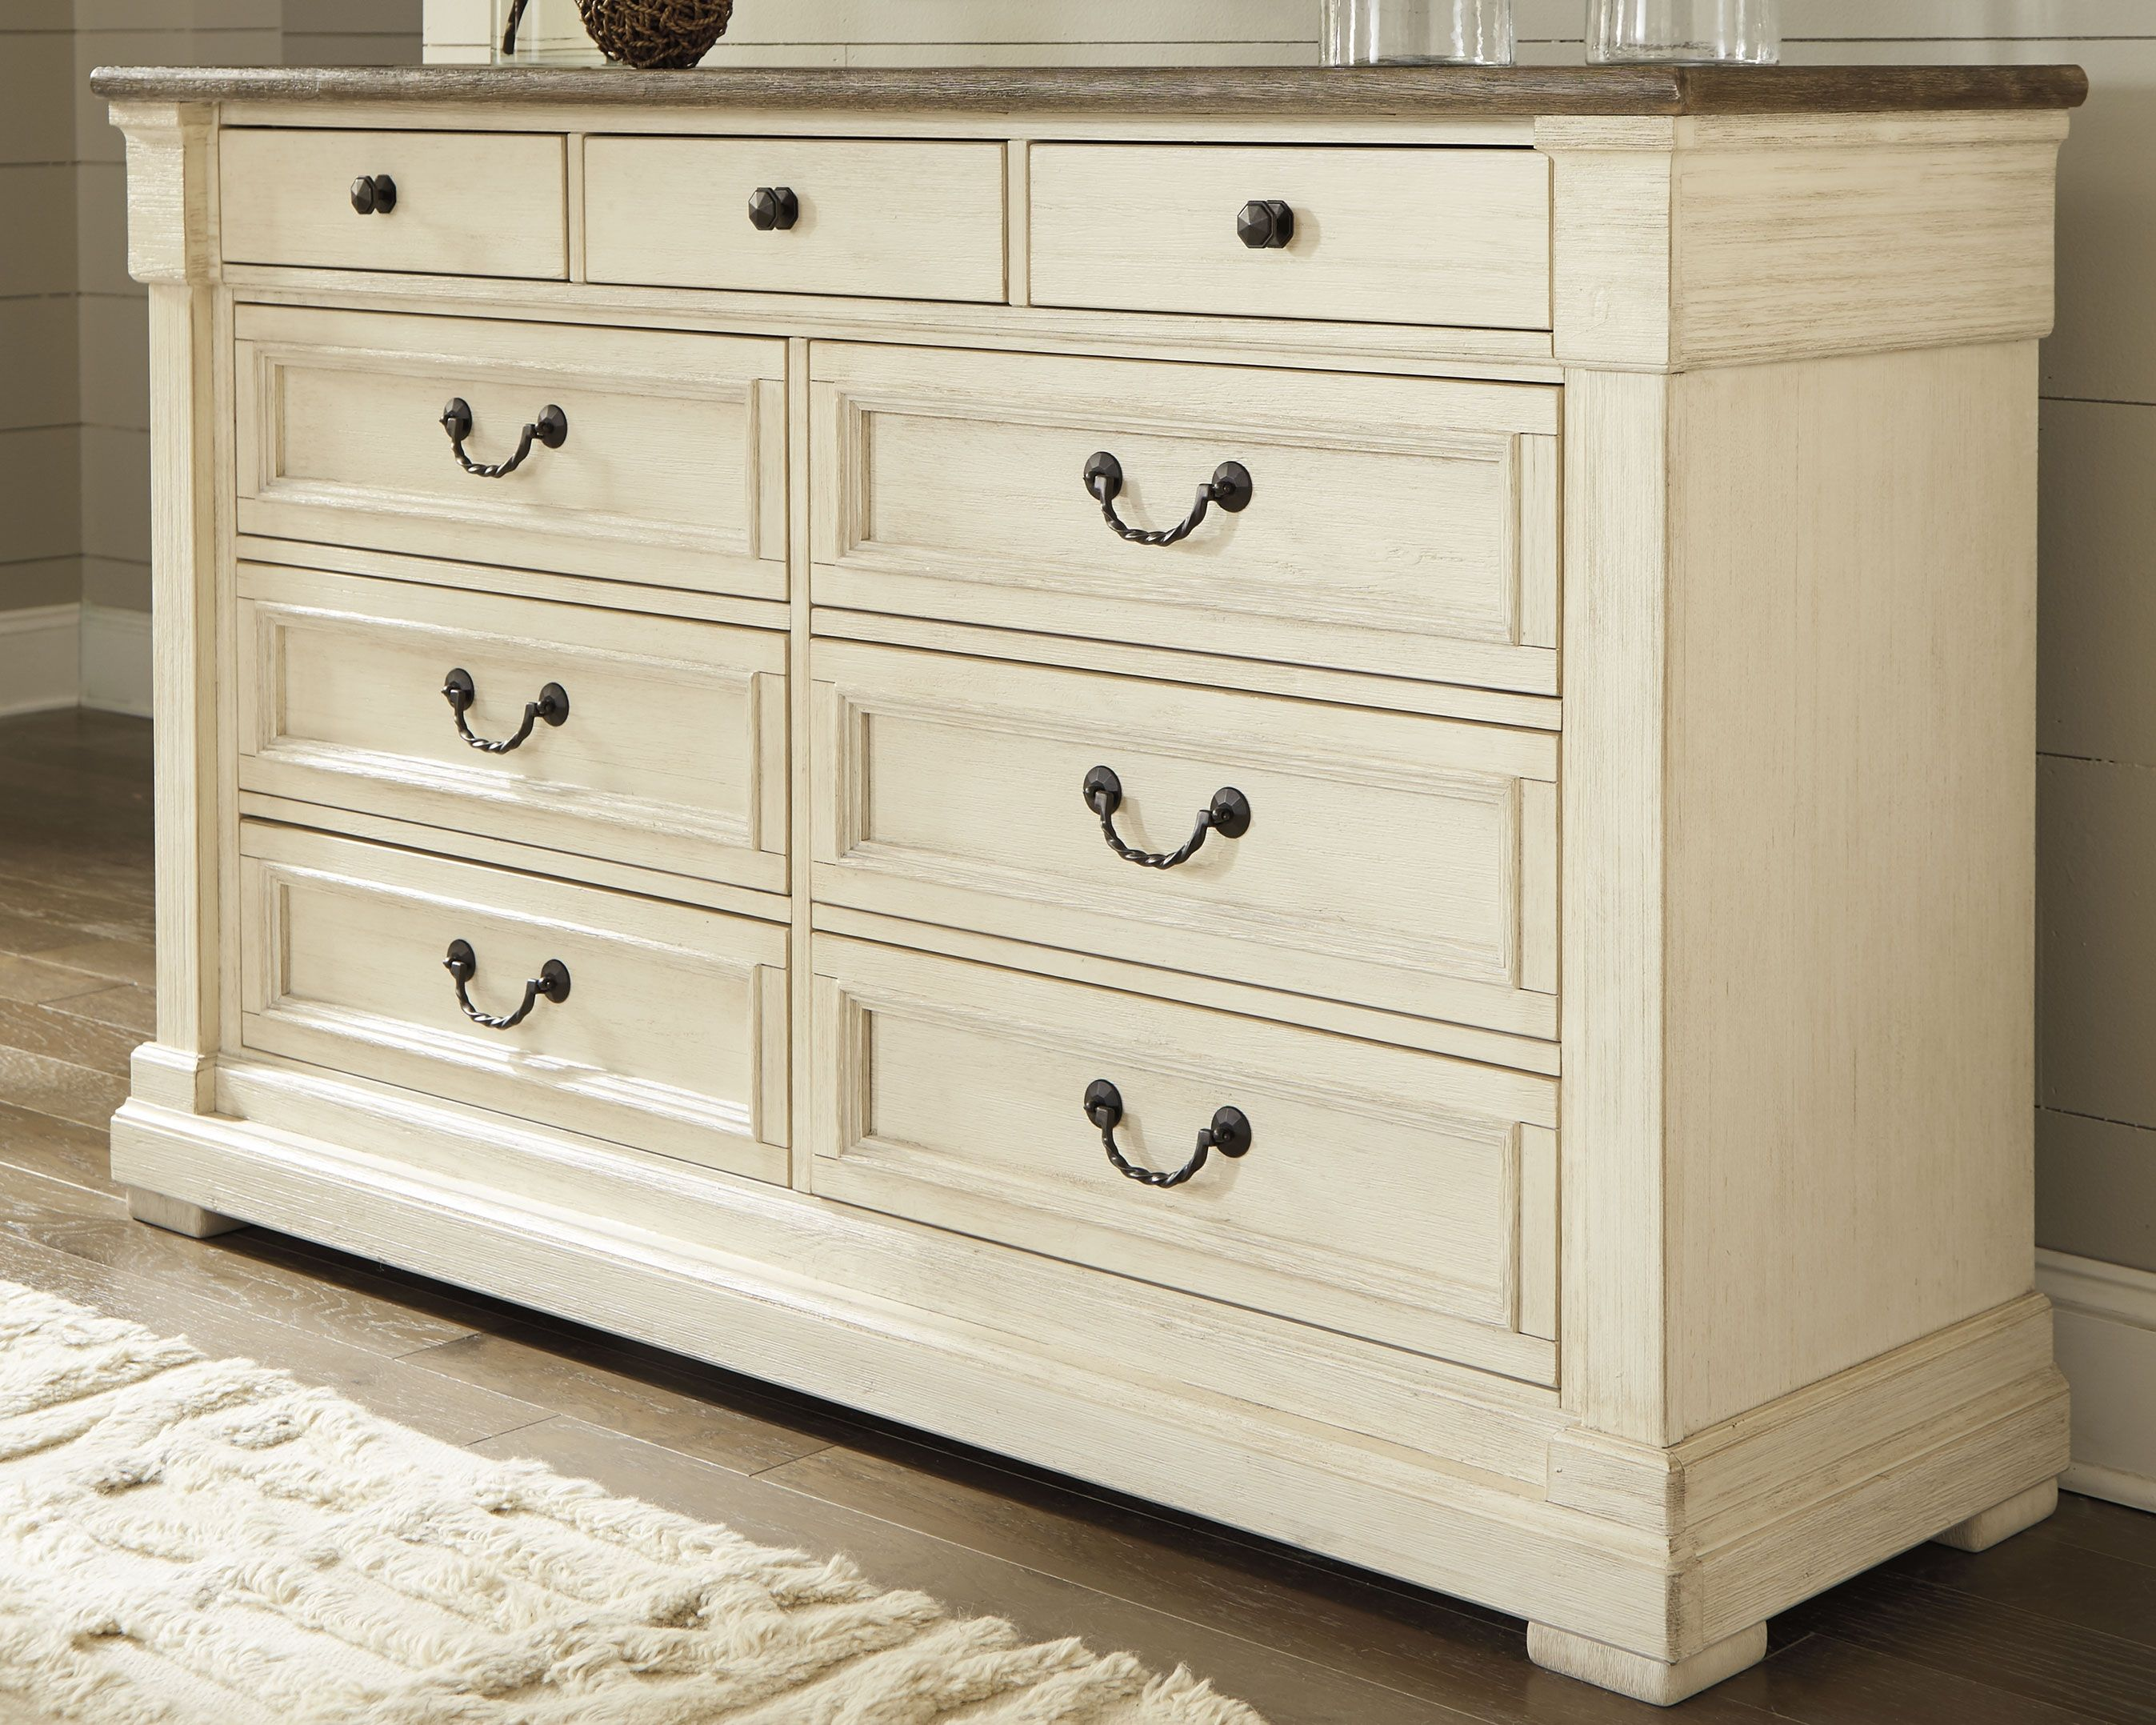 Best Bolanburg Dresser Two Tone Furniture Rustic Farmhouse 400 x 300